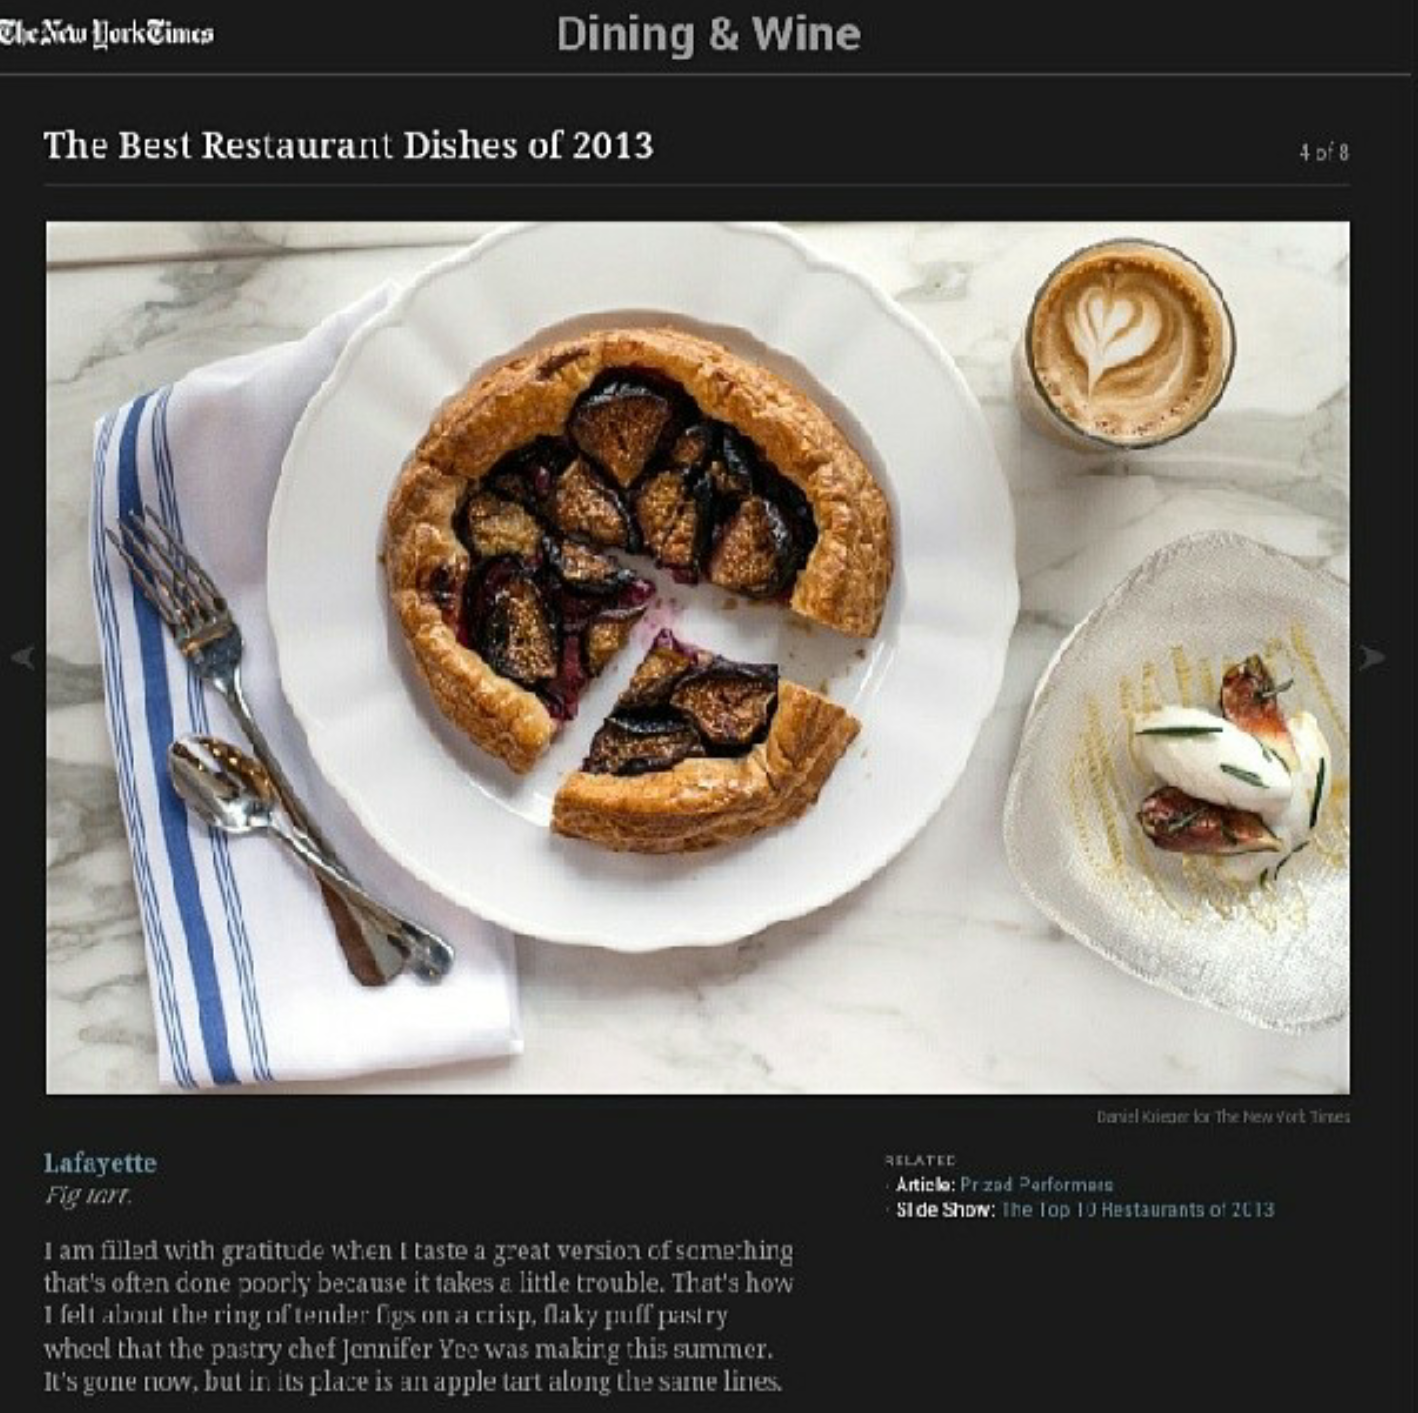 Getting my dessert mentioned in the New York Times.